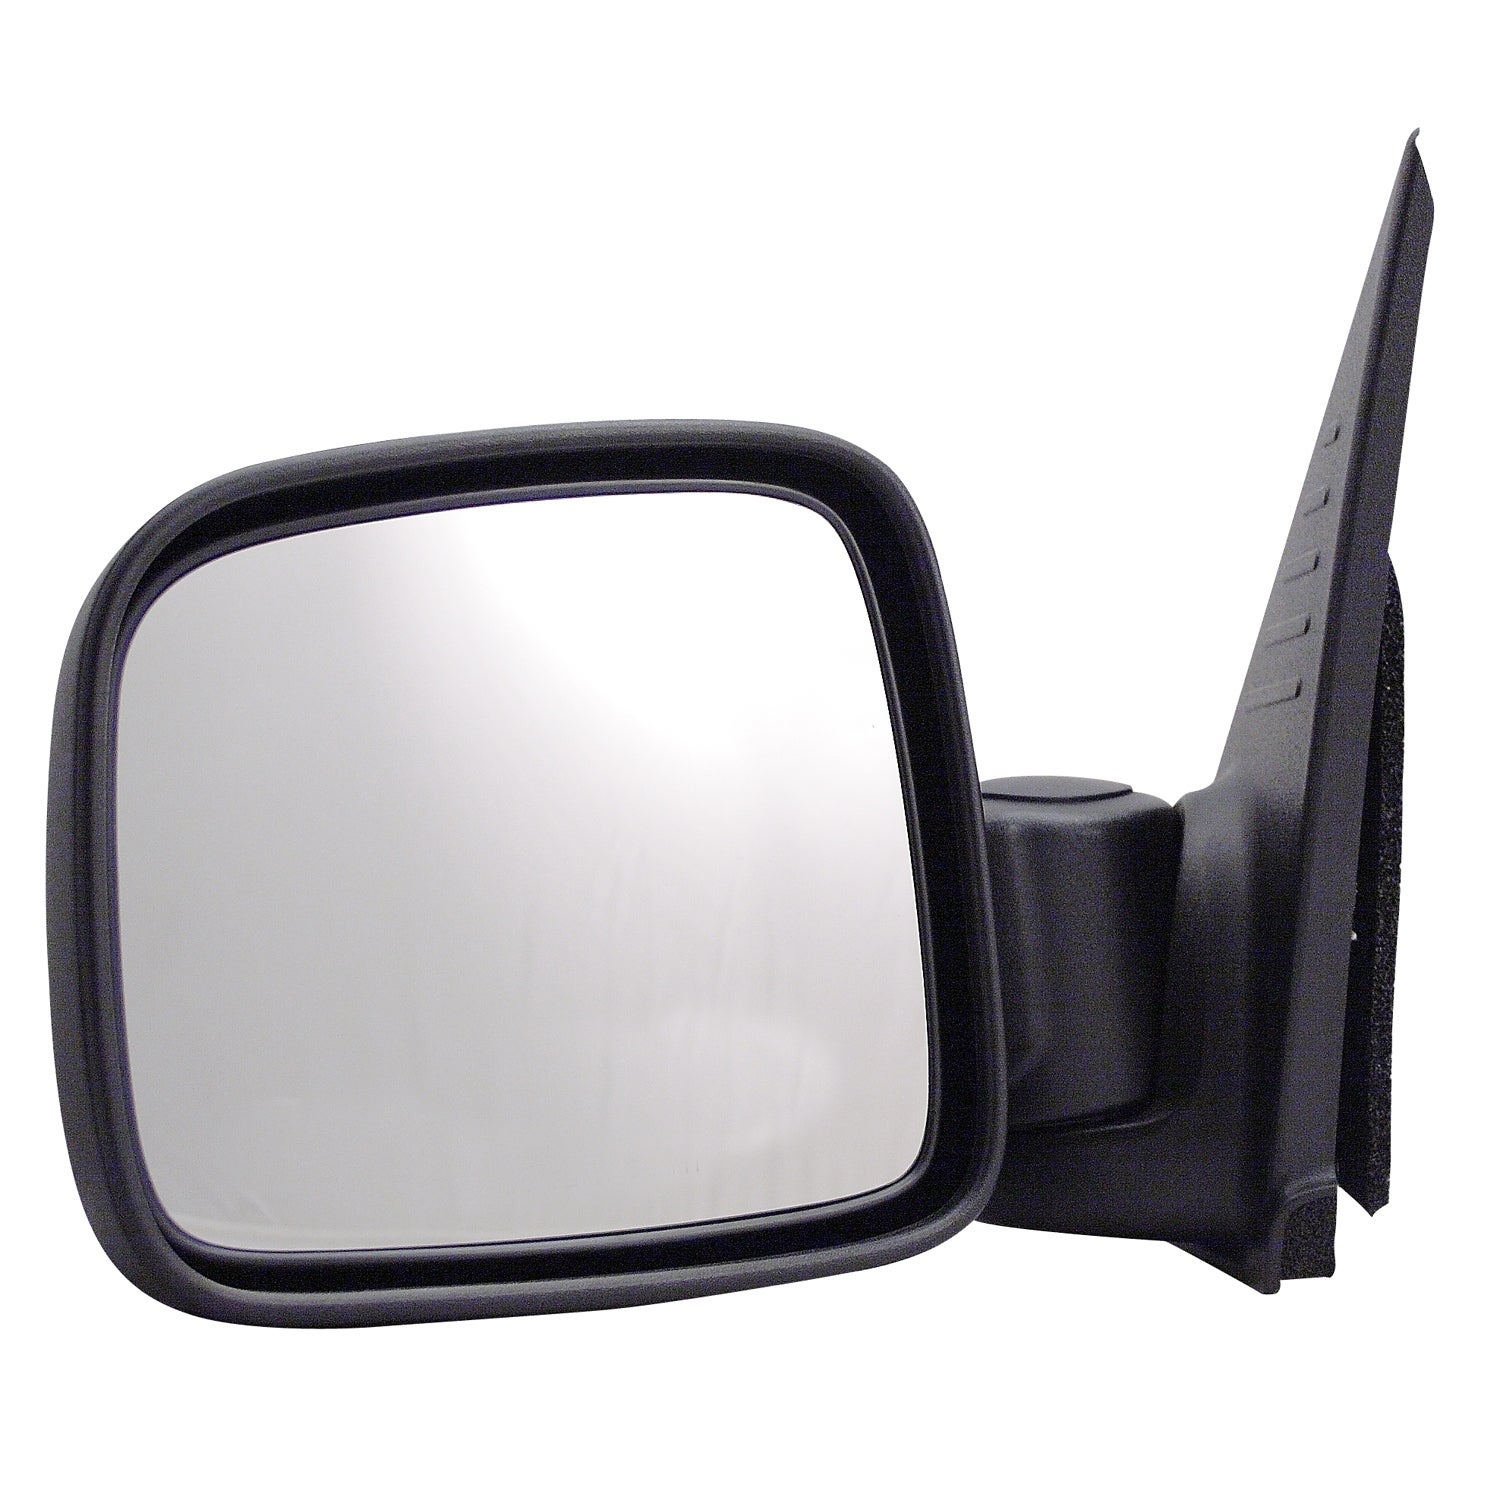 For Jeep Liberty 02-07 TYC Passenger Side Power View Mirror Non-Heated Foldaway